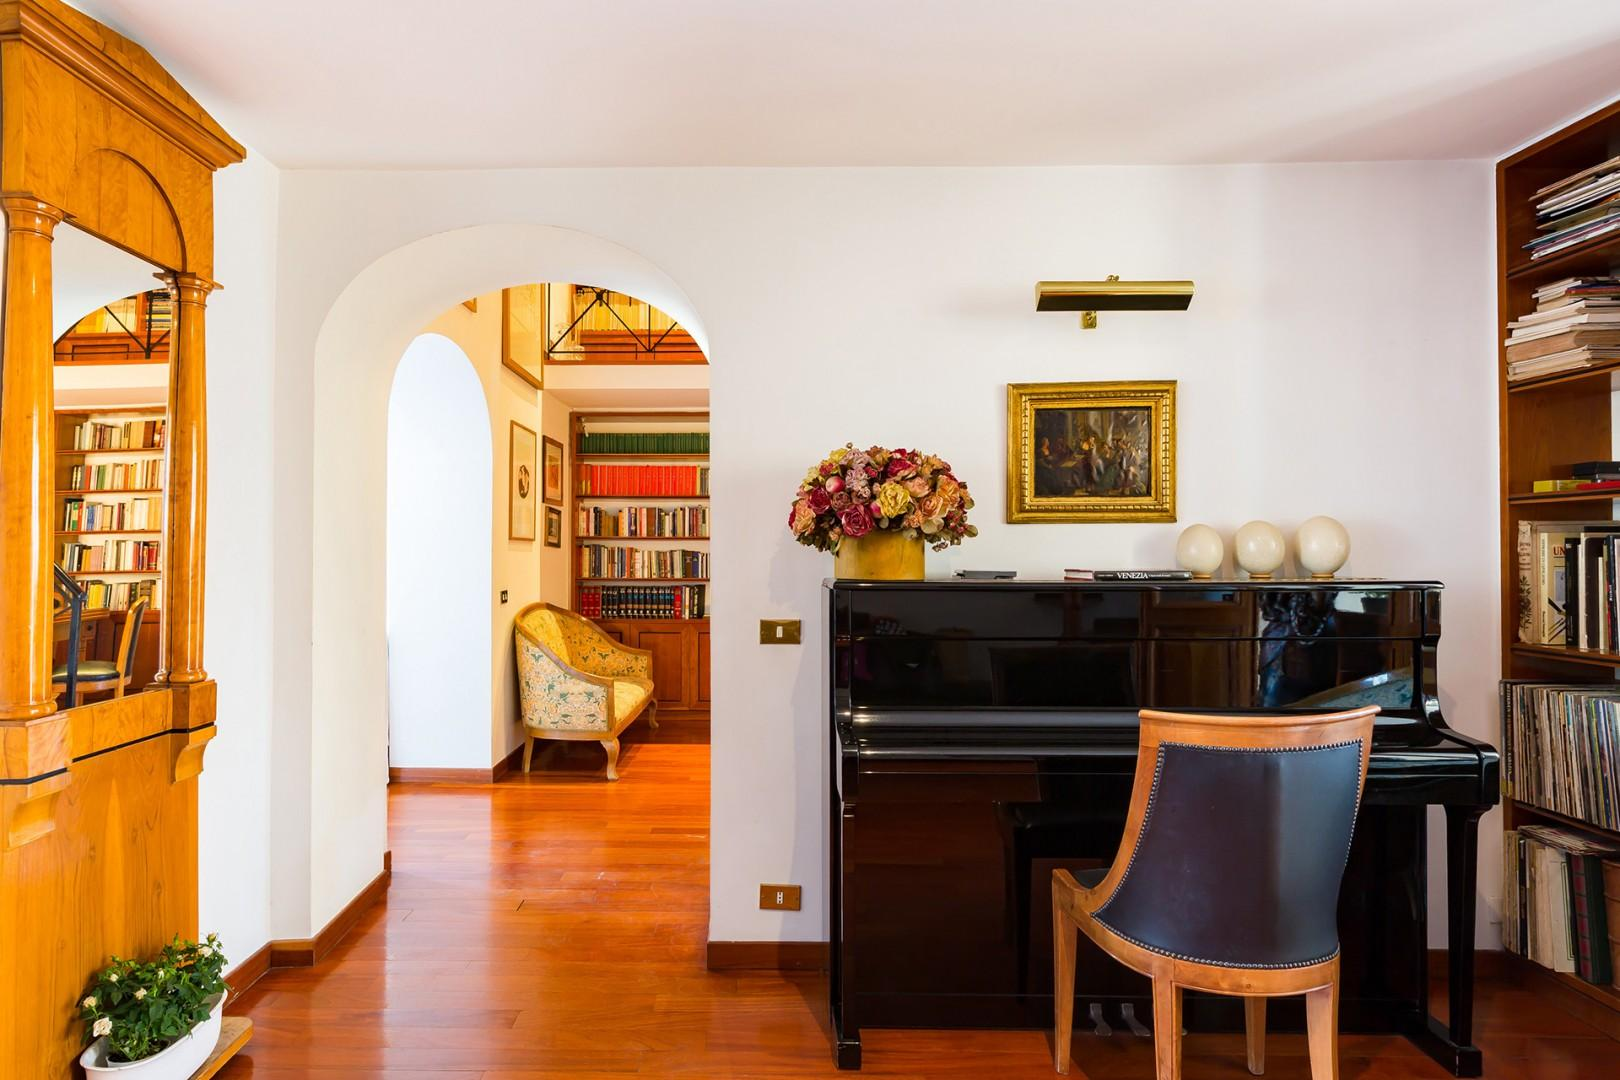 Foyer has a piano. The archway leads to the dining room.